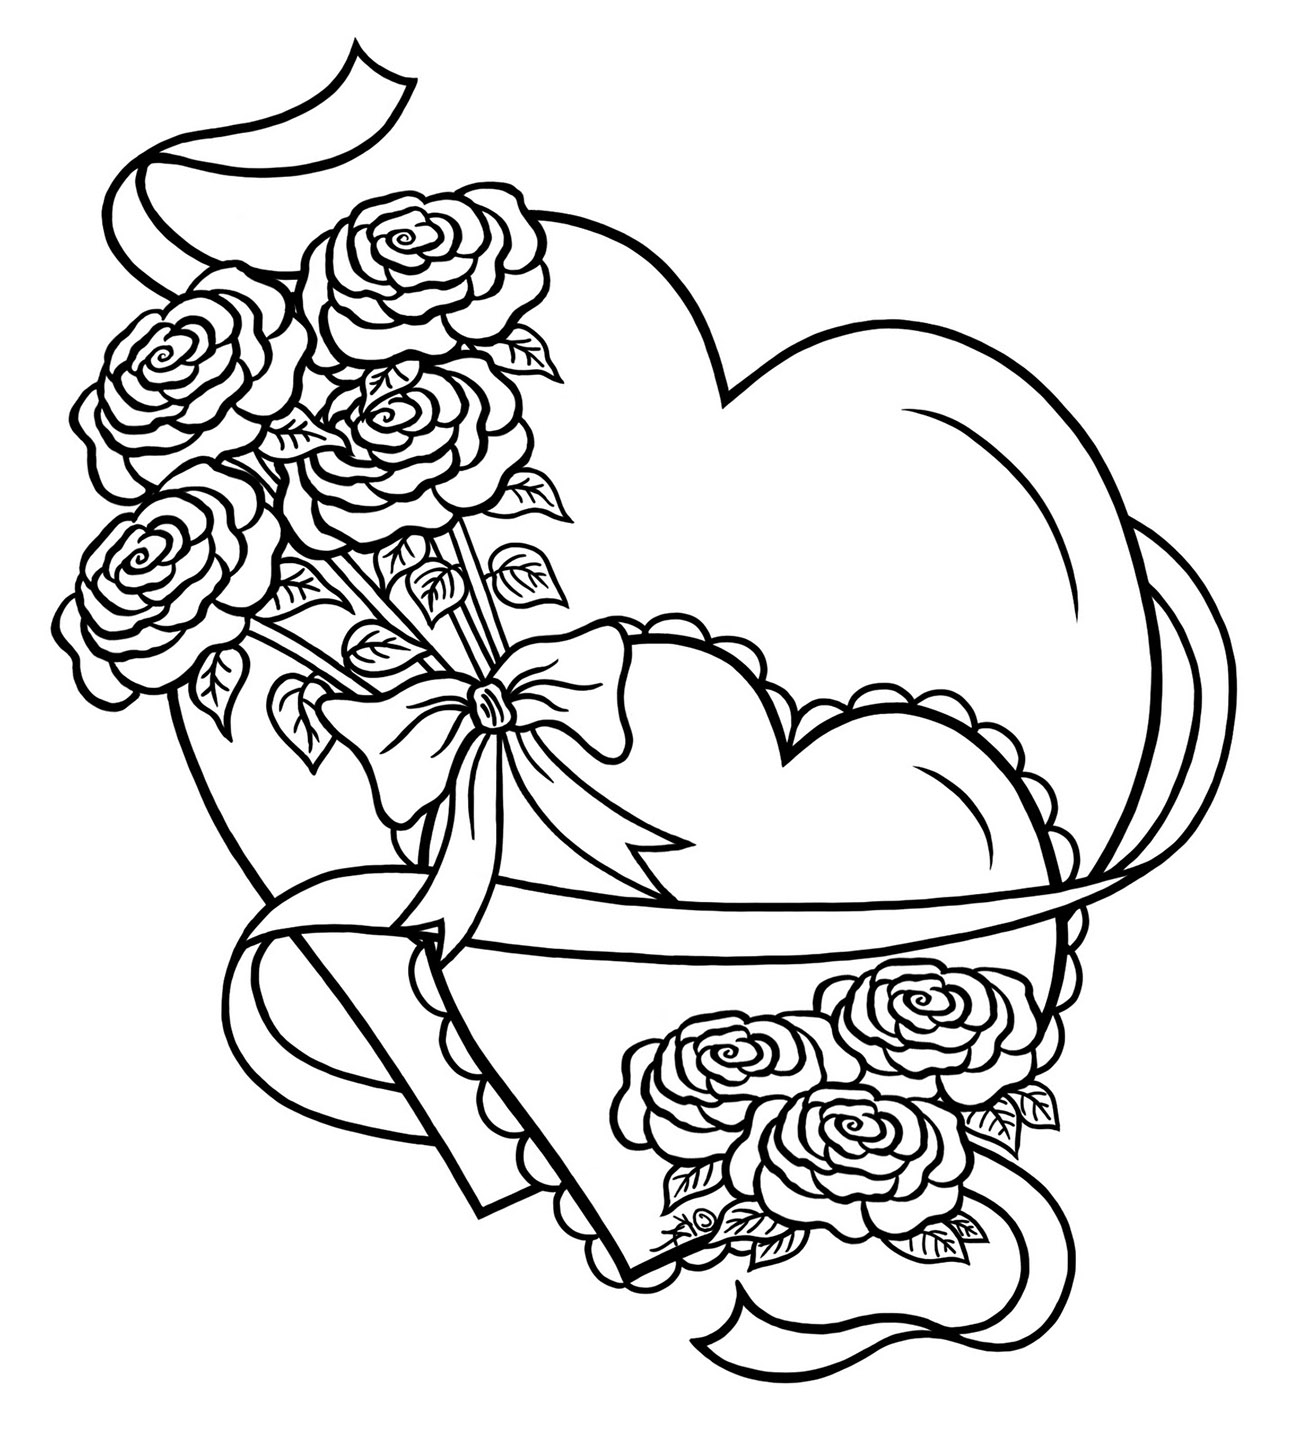 Coloring Book : Coloring Page Love Simple Heart With Flowers ...